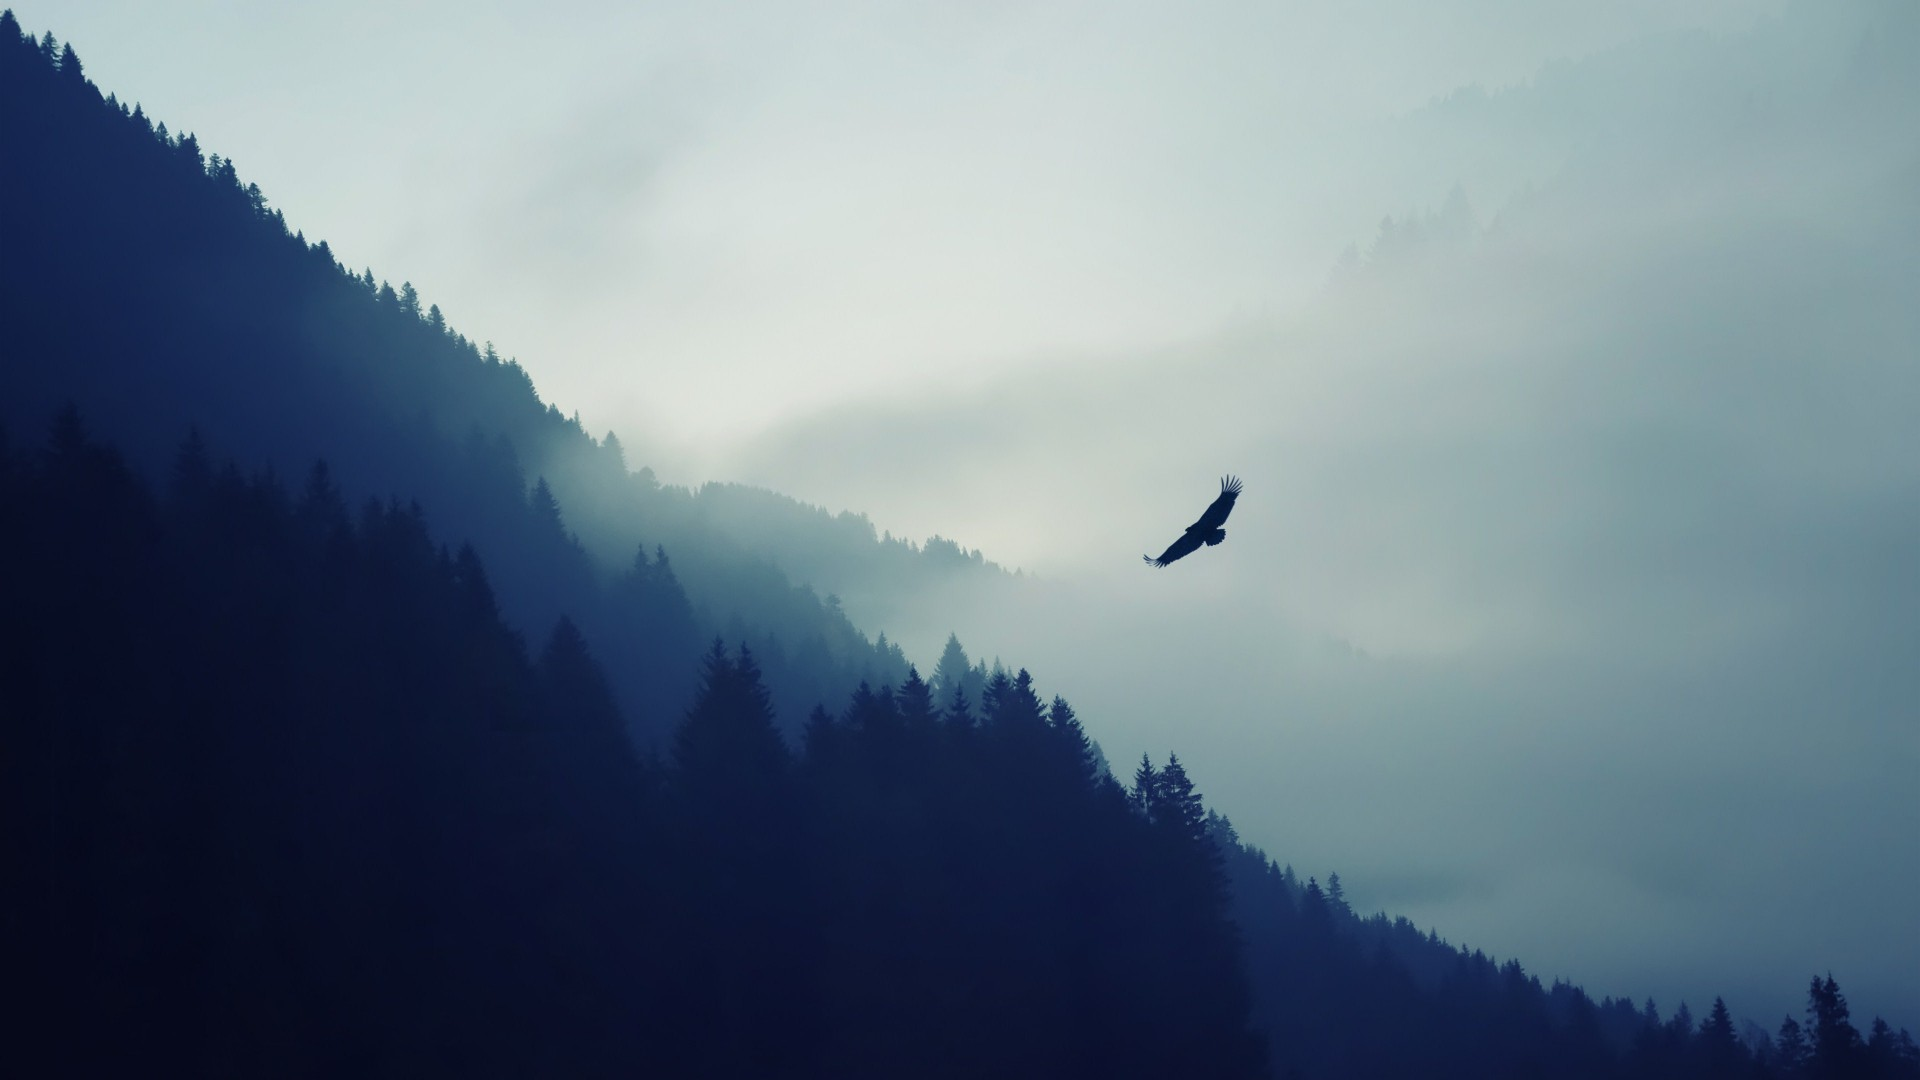 лес, 5k, 4k, туман, орел, обои, forest, 5k, 4k wallpaper, fog, eagle, landscape, wallpaper (horizontal)